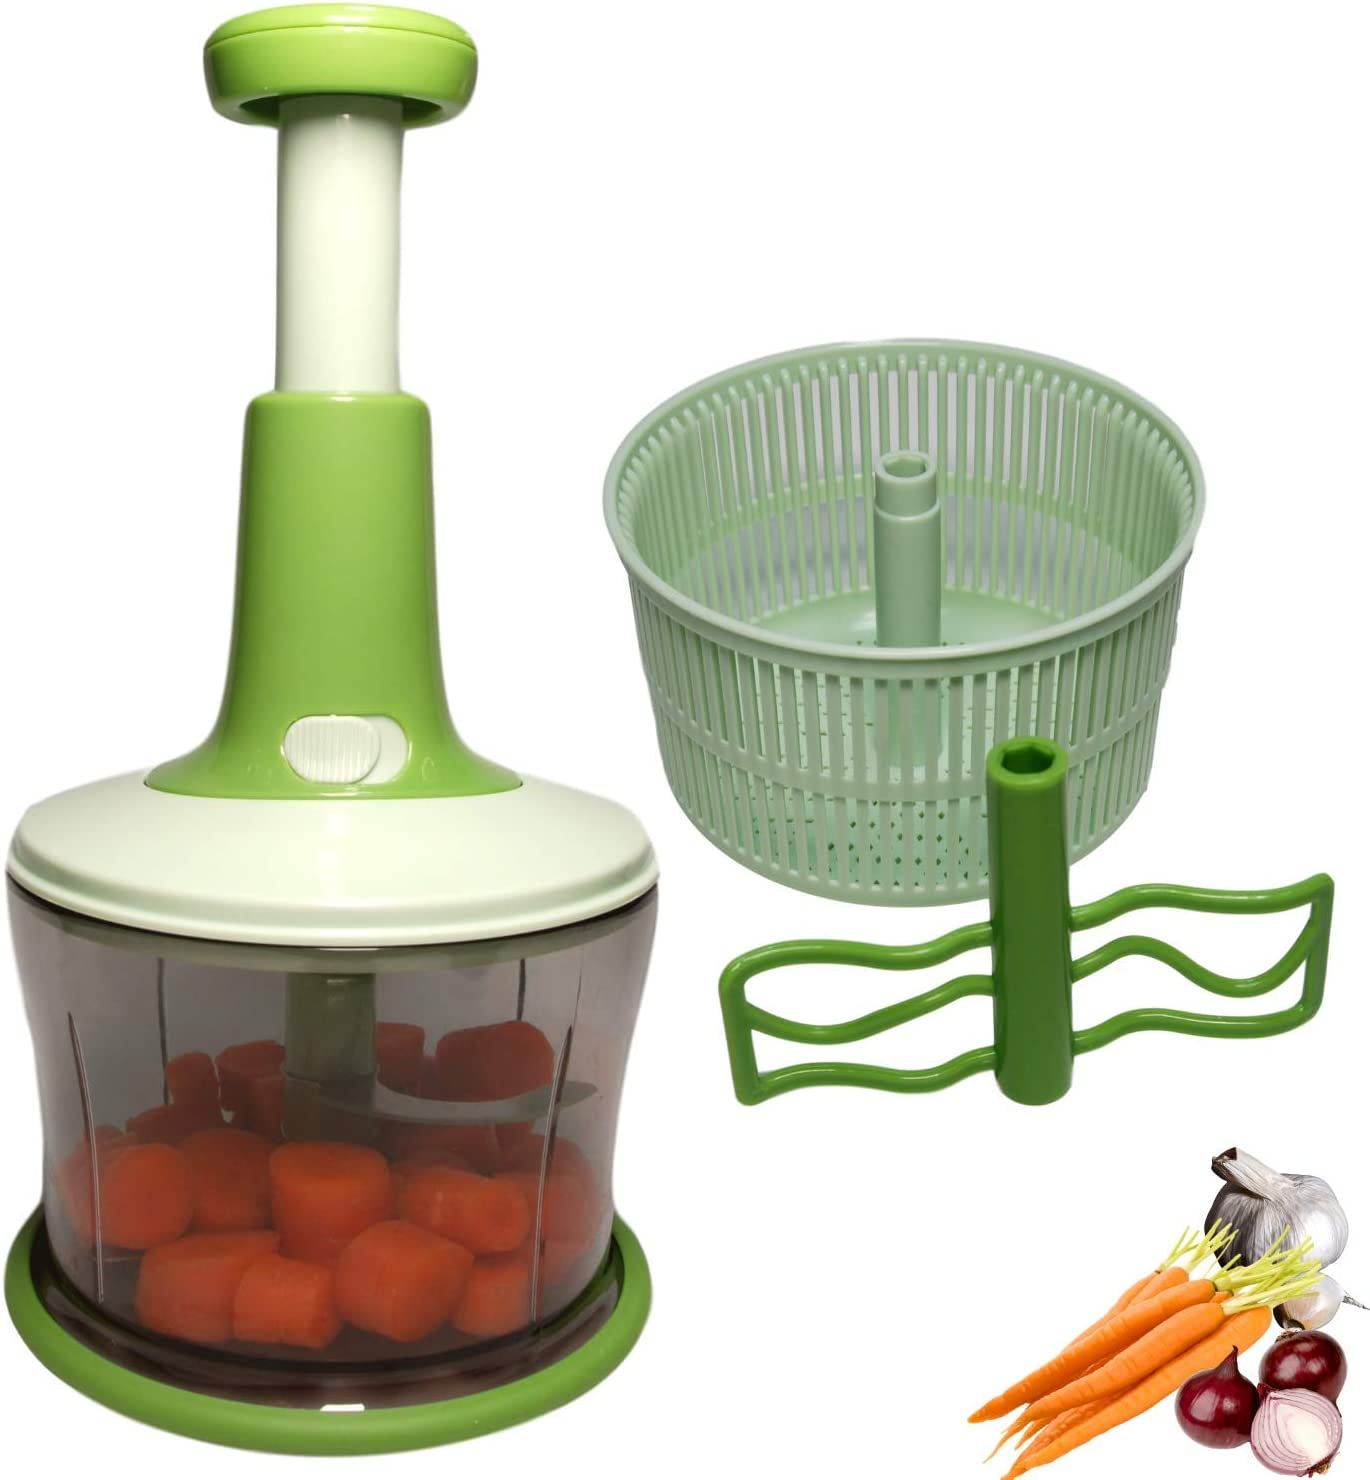 Manual Speedy Hand Press Food Chopper-Care Bliss BPA FREE Stainless Steel Blade Onion Chopper For Vegetables Fruits Nuts and More-Egg Whisk-Salad Spinner